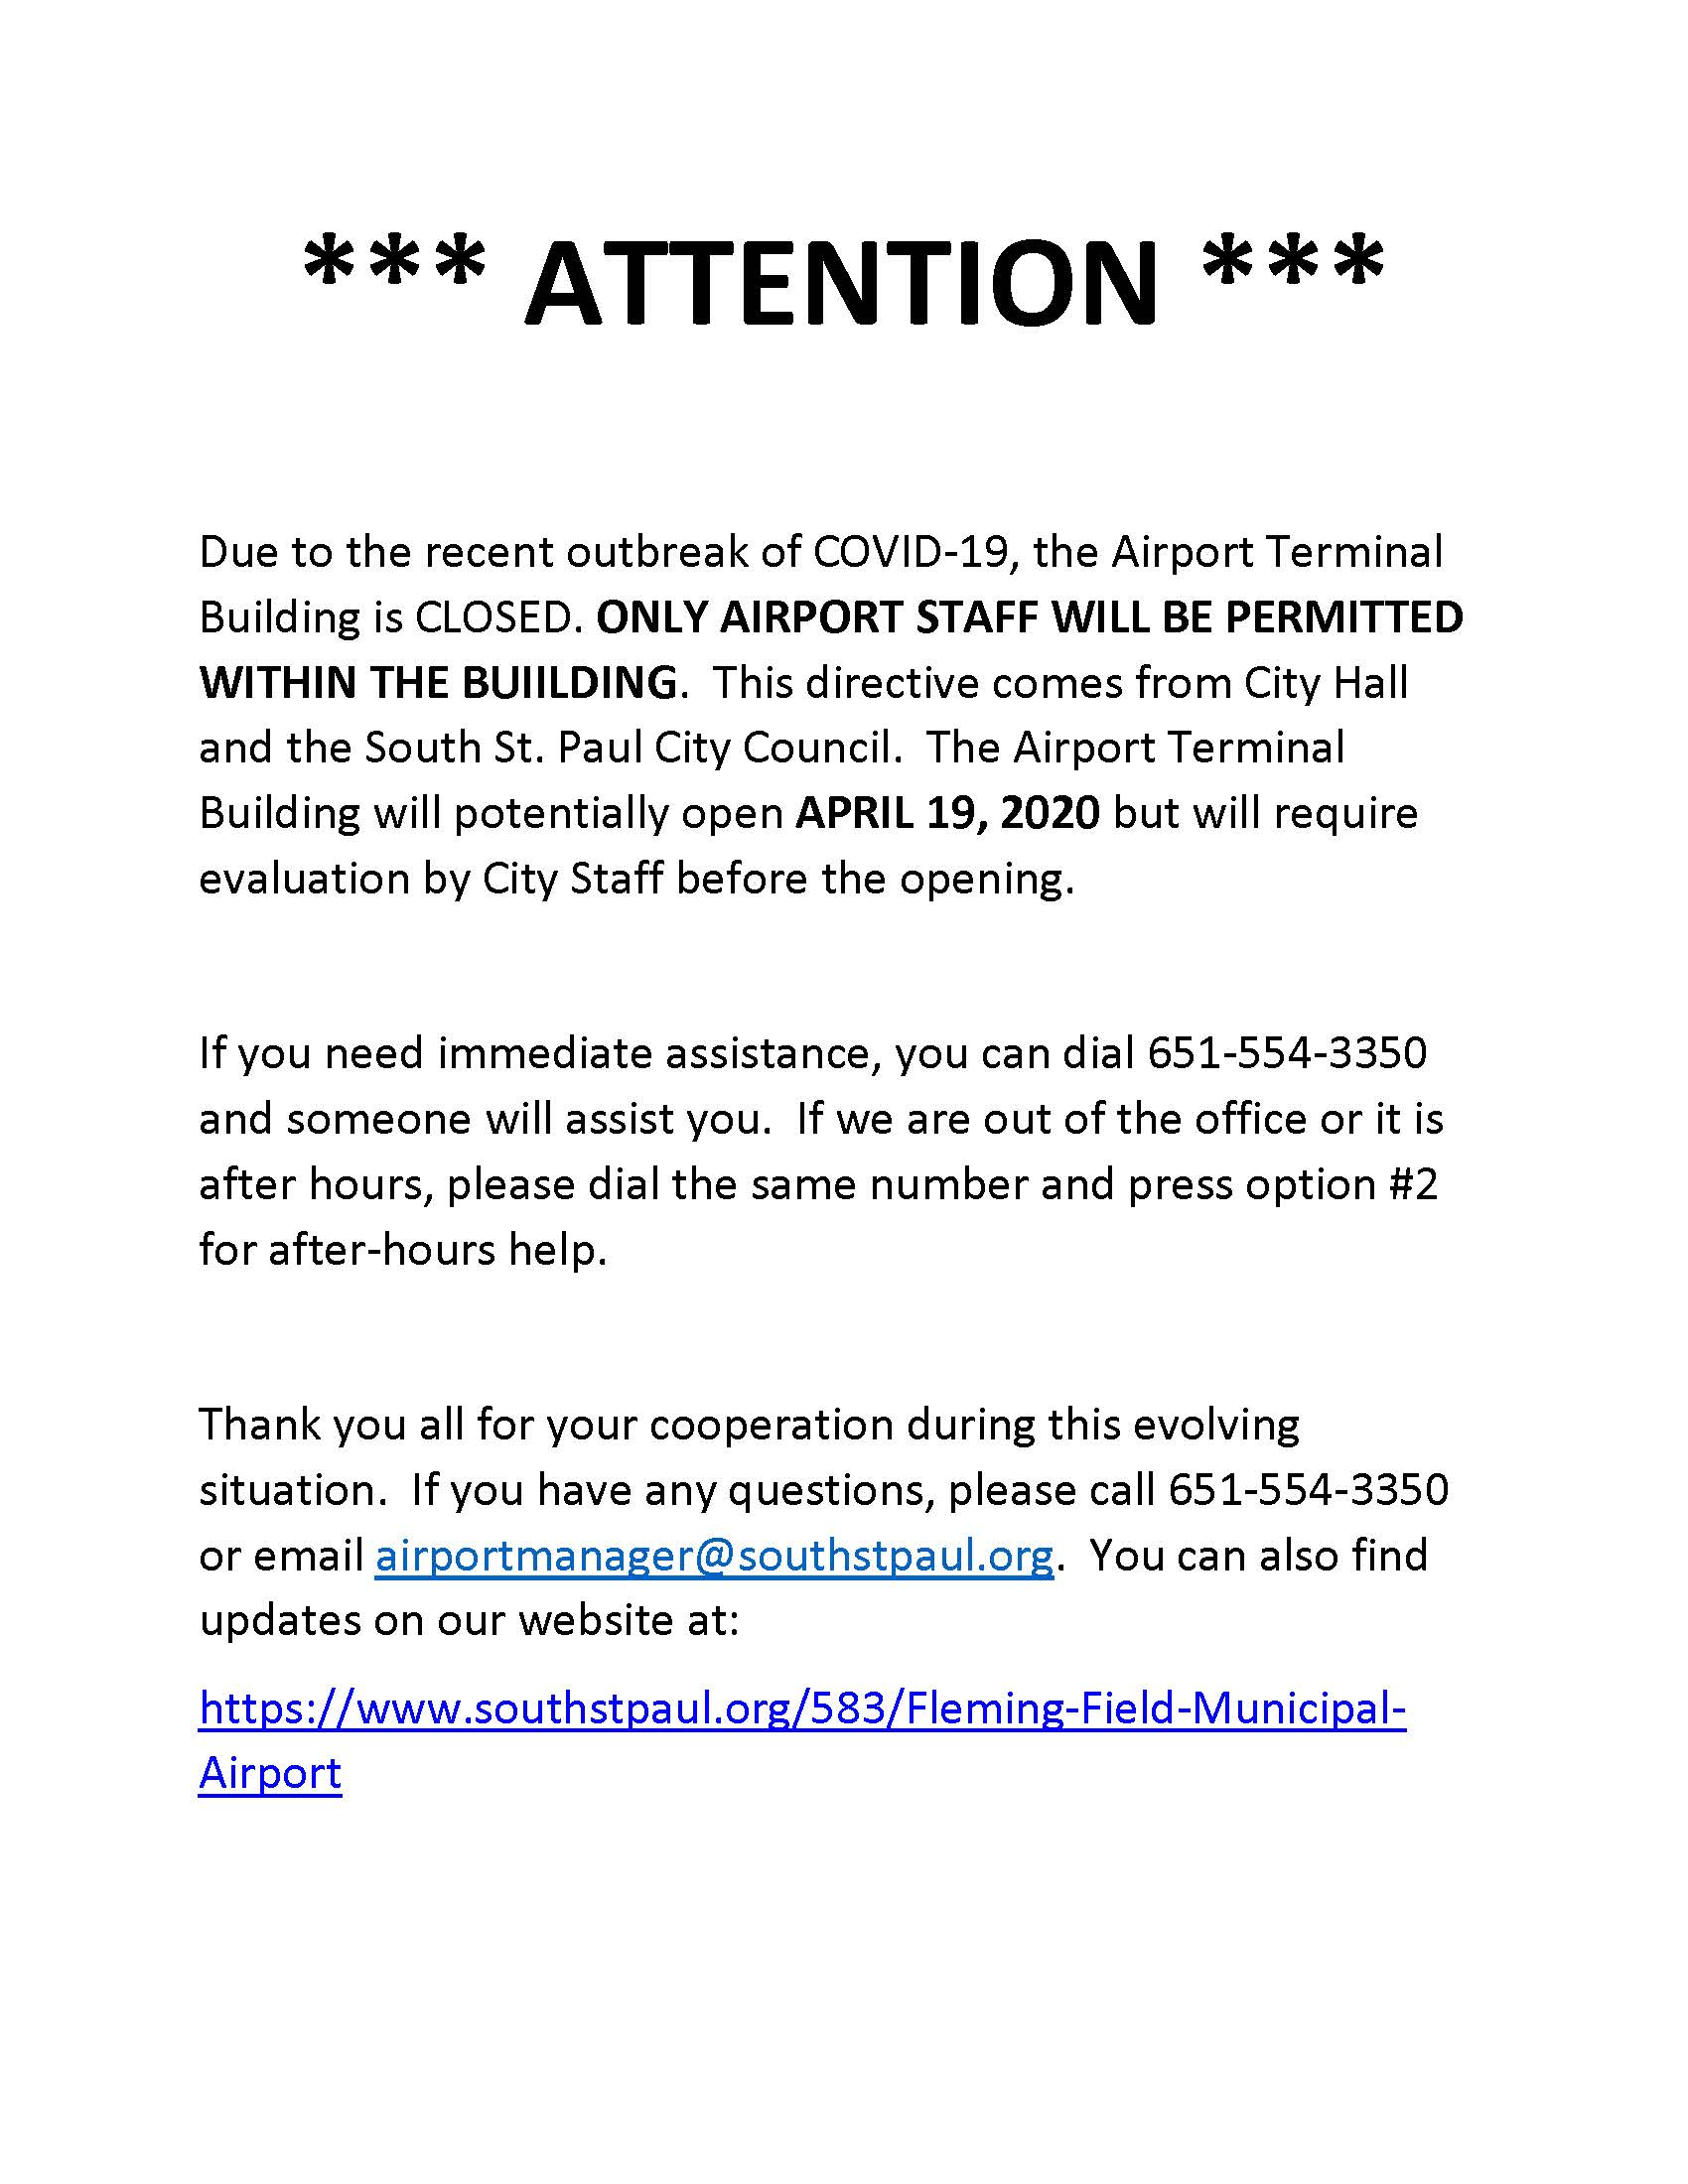 COVID-19 Terminal Closure Updated